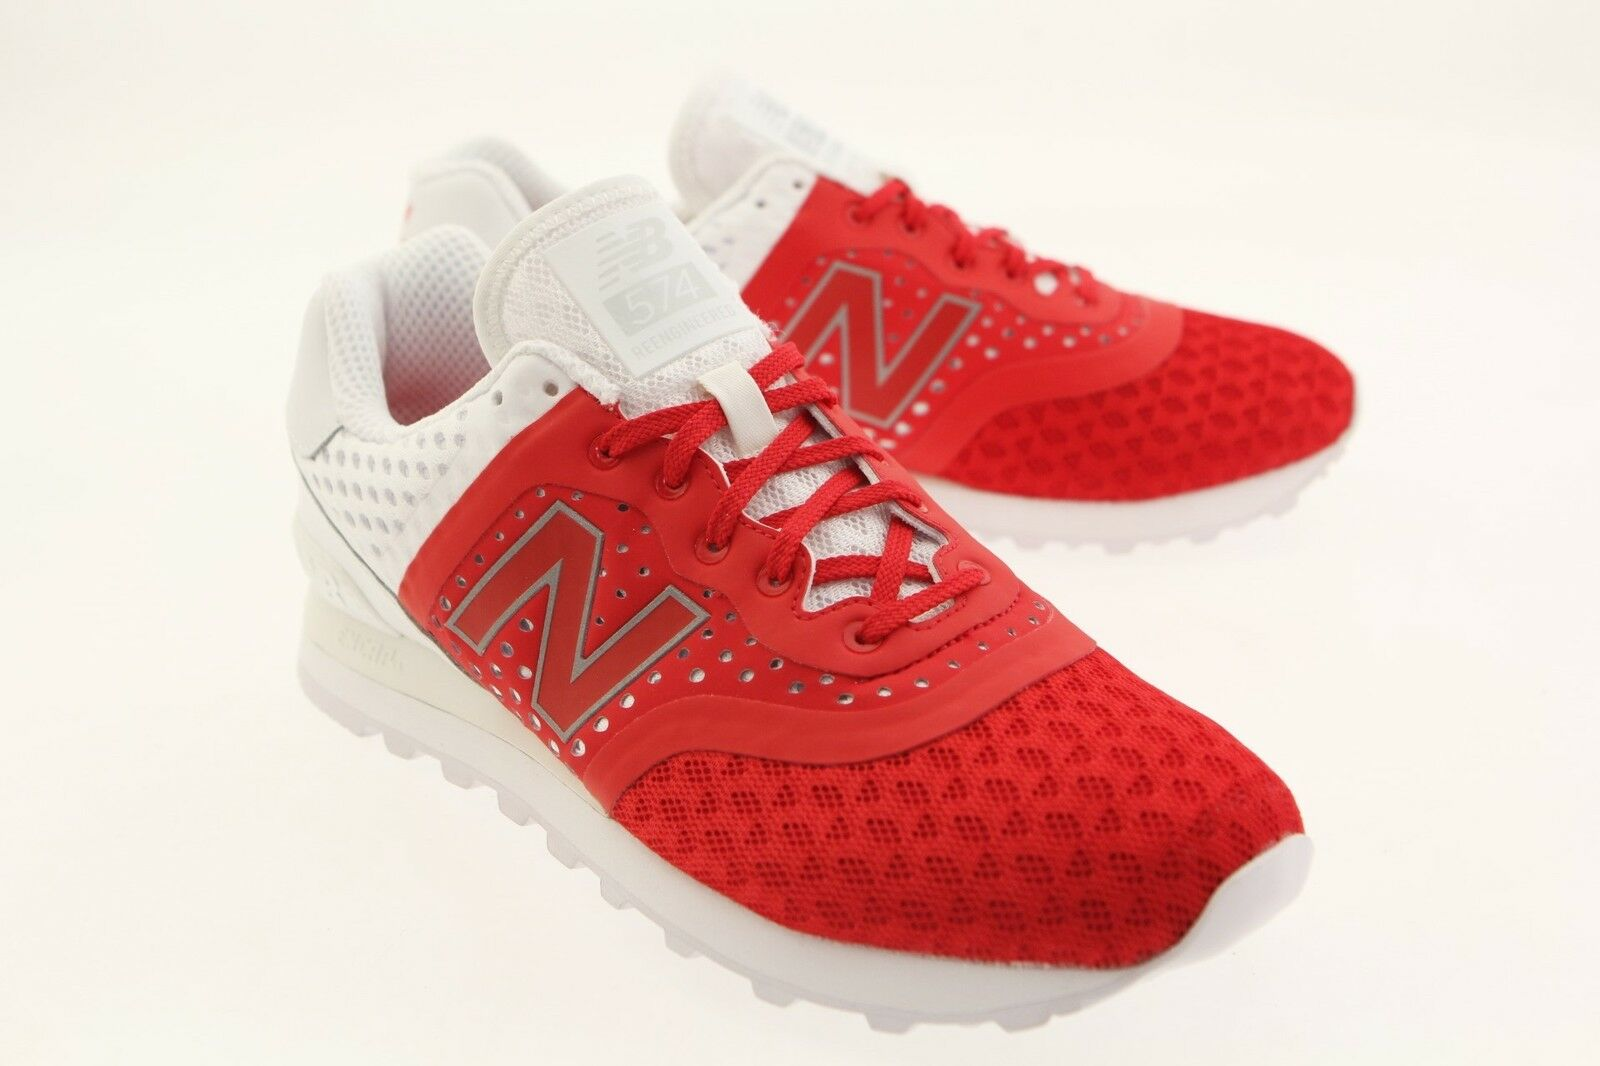 New Balance Men 574 Re-engineered Breathe MTL574MR MTL574MR MTL574MR red white MTL574MR 0b896b